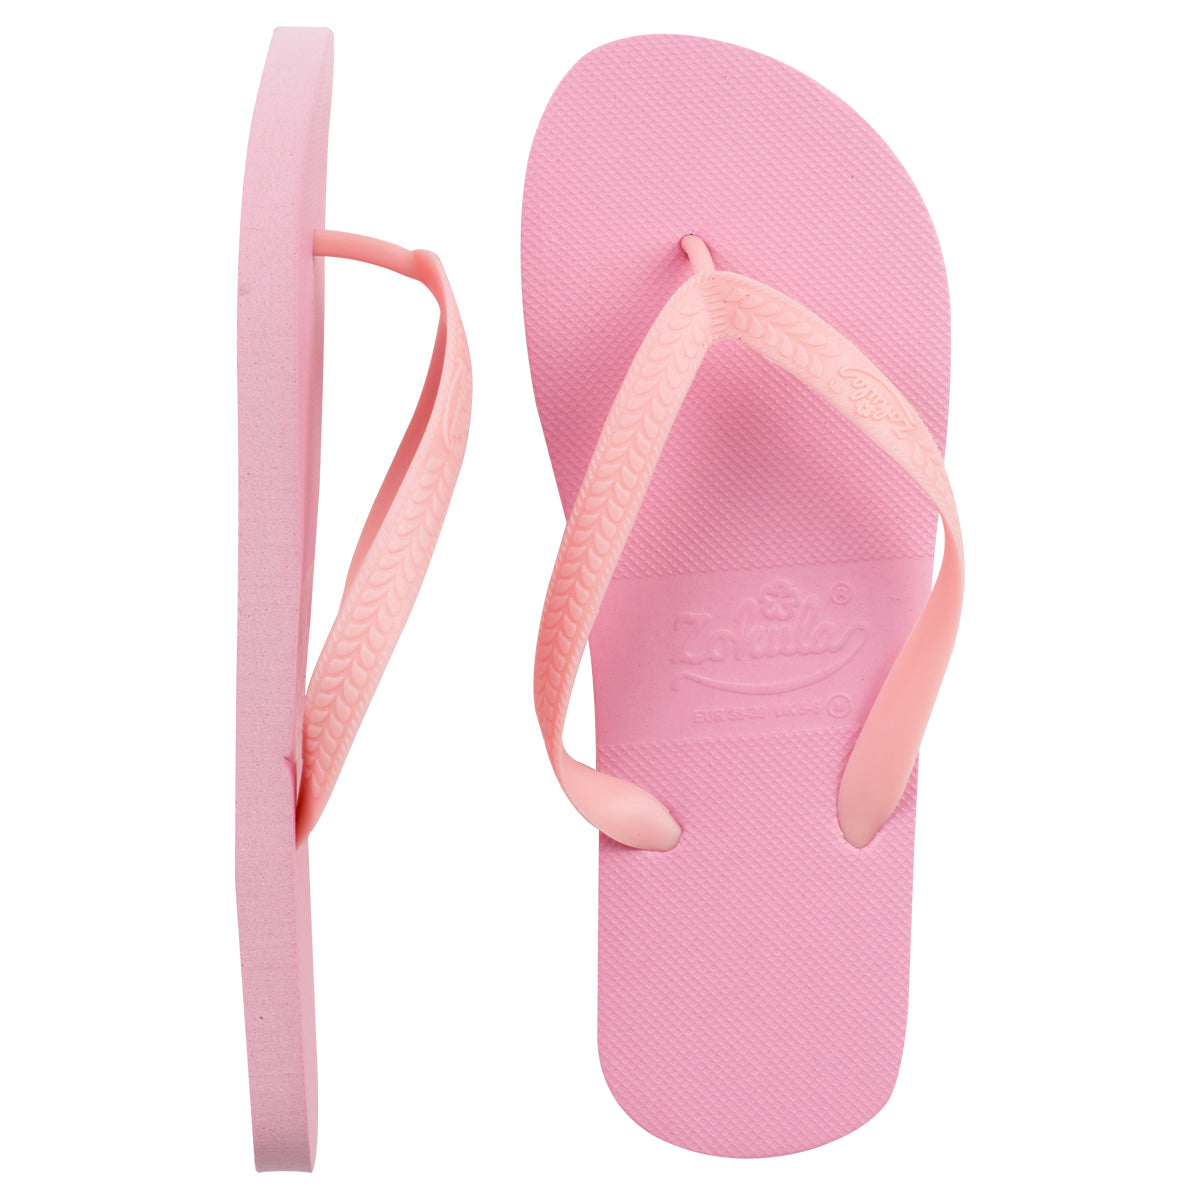 009808a9a Zohula   Baby Pink   Originals Party Pack - 20 Pairs